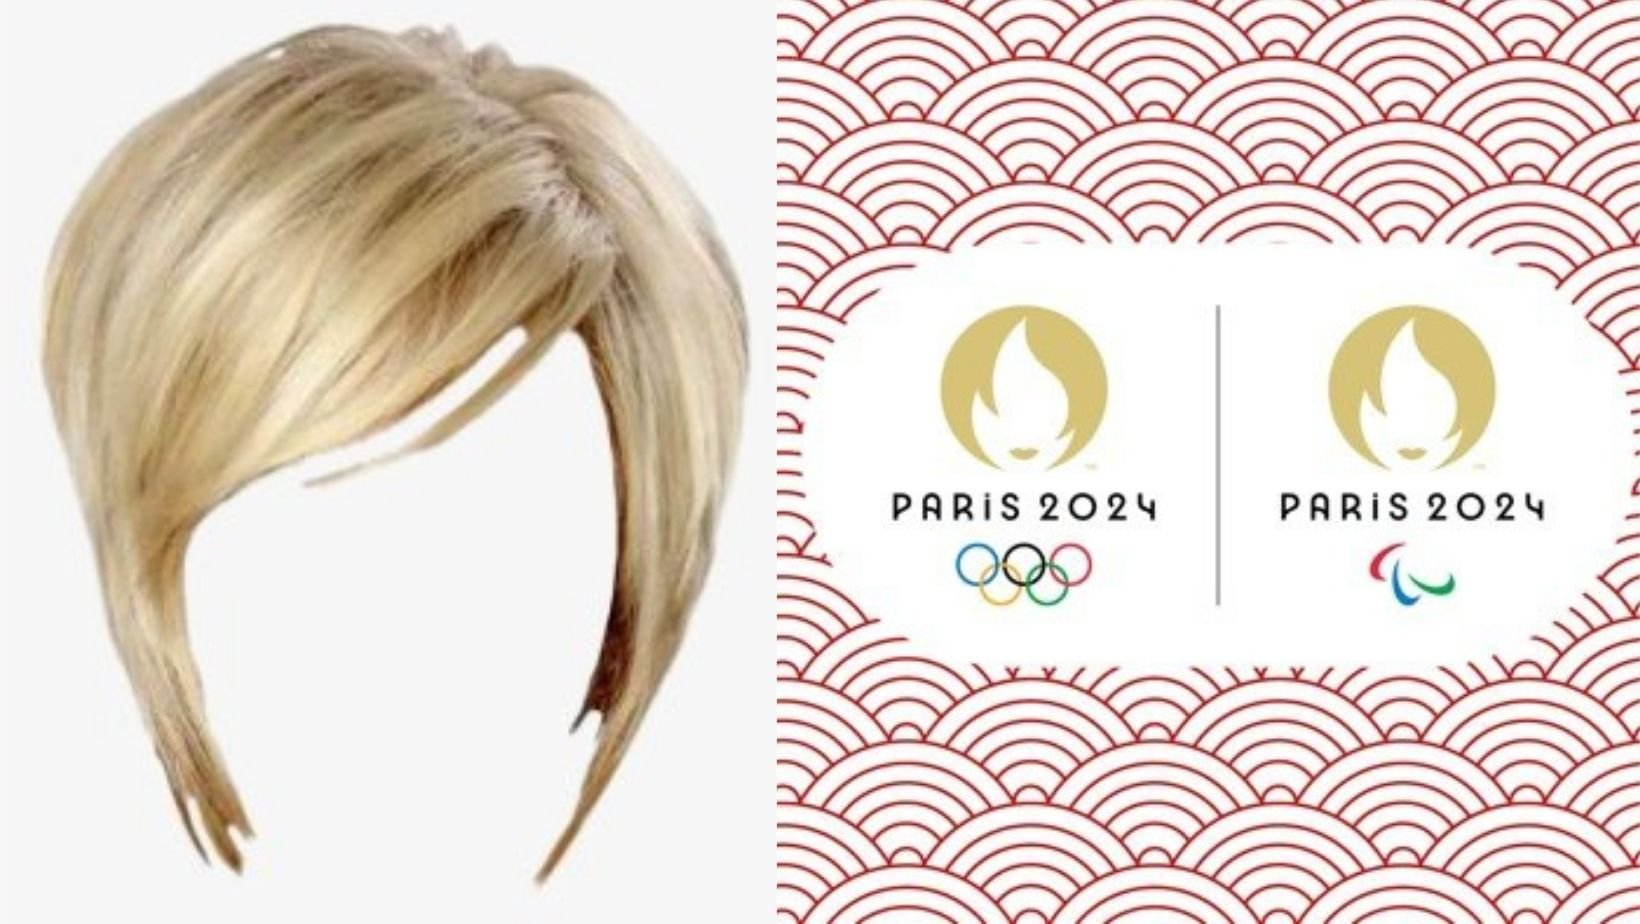 """cover.jpg?resize=412,275 - Paris' 2024 Olympics Logo Has Been Heavily Criticized For Looking Like A """"Karen"""""""